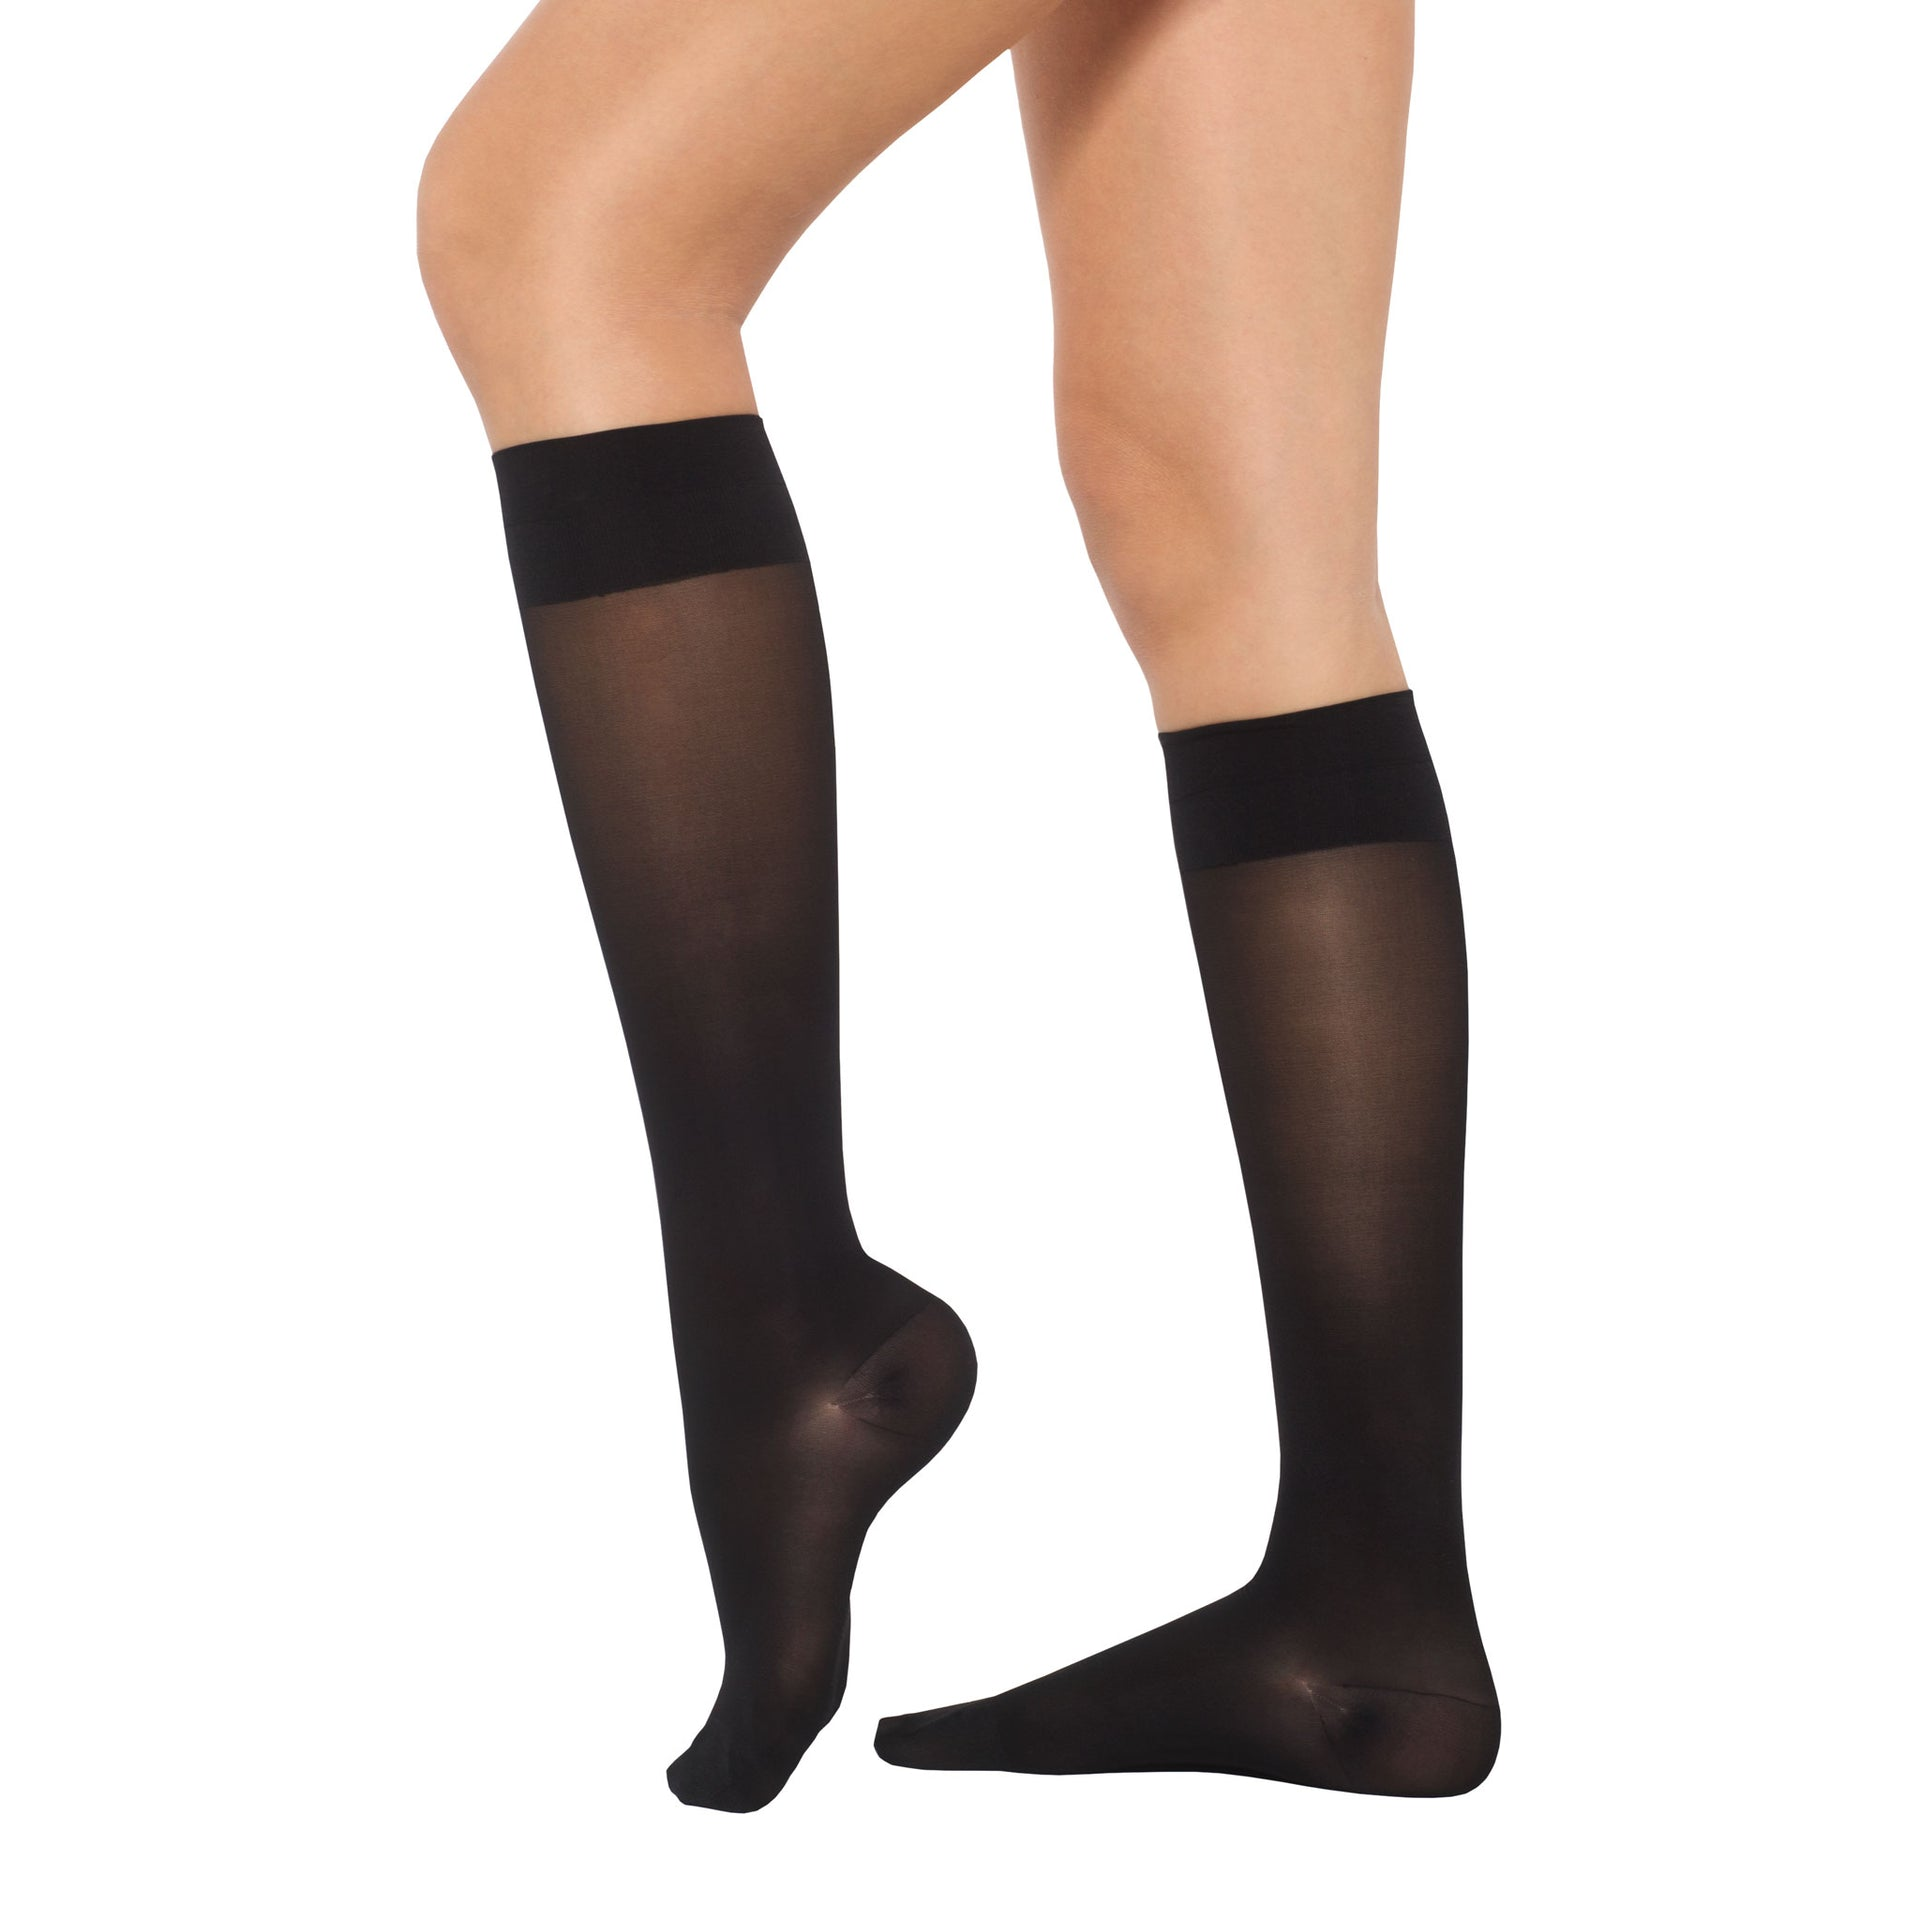 Graduated Compression Knee Highs